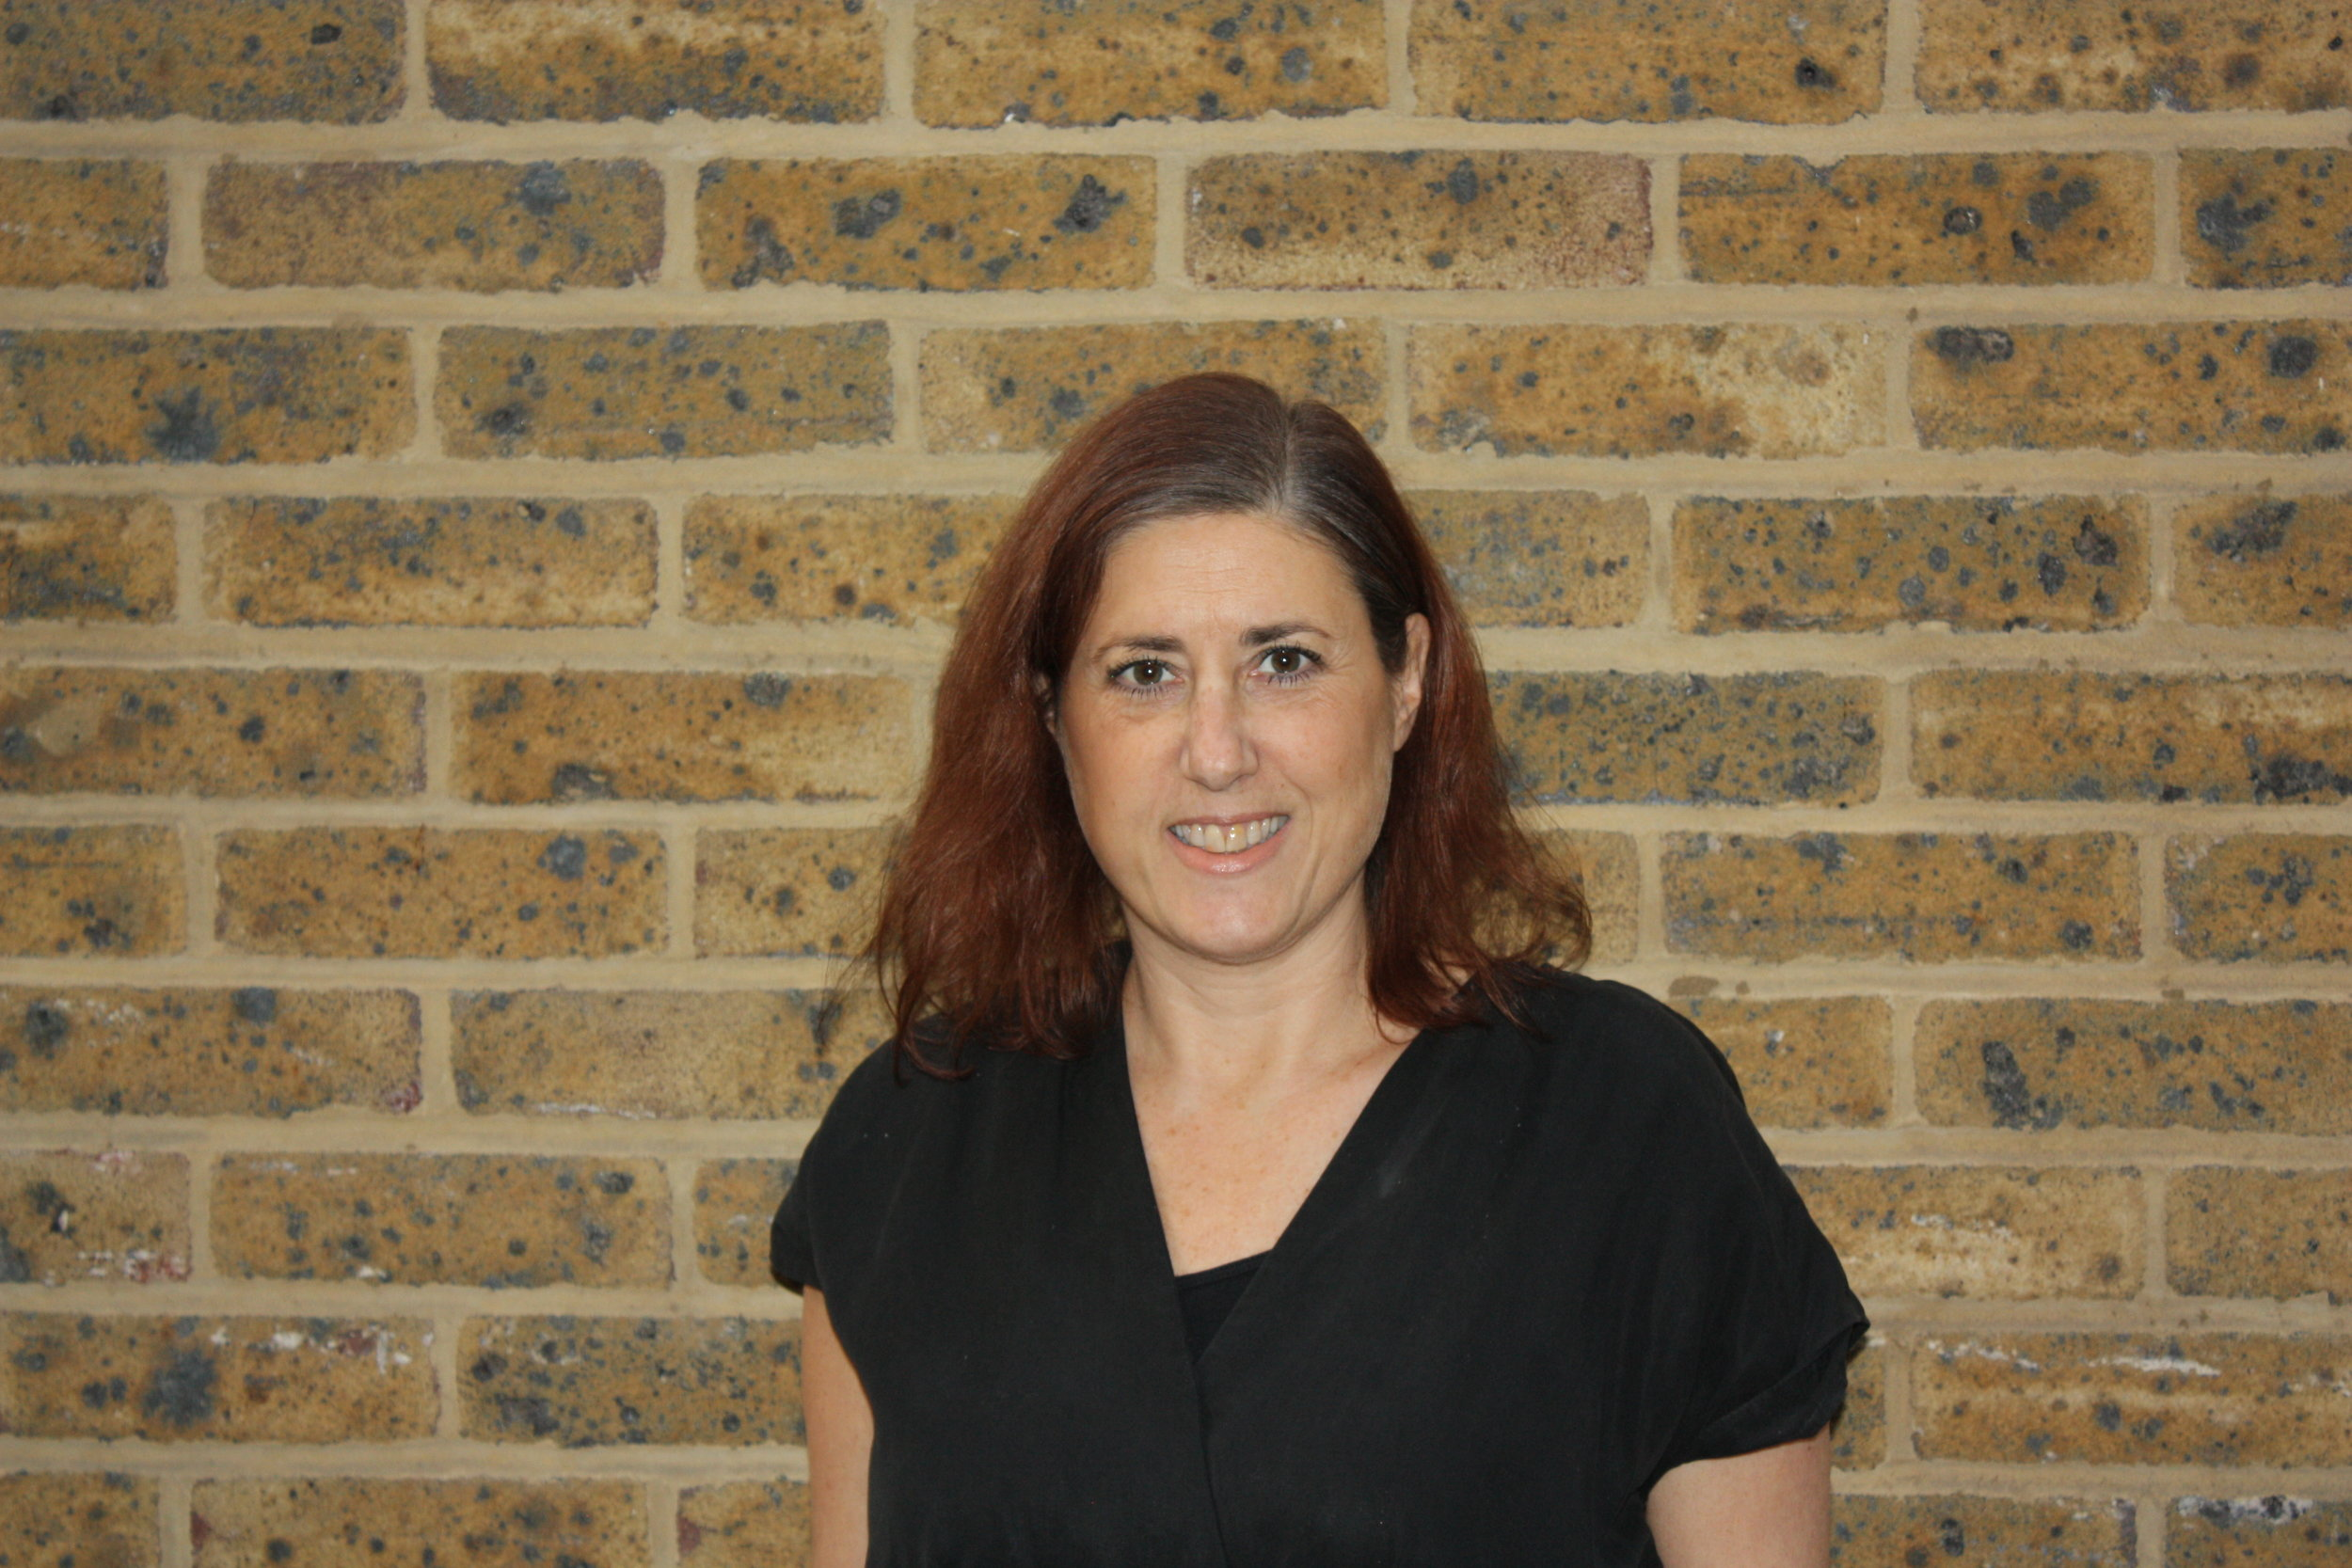 Lara Leventhal - I spent over 15 years running other people's agencies as MD and winning numerous agency and campaign awards. In 2016, a family event changed my life and I decided to launch my own business. But I wanted to launch a business with a difference, an agile and flexible business that tapped into the changing agency landscape and capitalised on the amazing, experienced and free spirited talent being locked out of an industry by agencies that wanted people to work in a specific way - and I know as I used to be one of those people. So, in 2017, Visible was born and I've never looked back. And as we continue to stick to our guiding principles we marvel at the brilliant clients we've had the pleasure to work with and the small and talented team we've got around us…